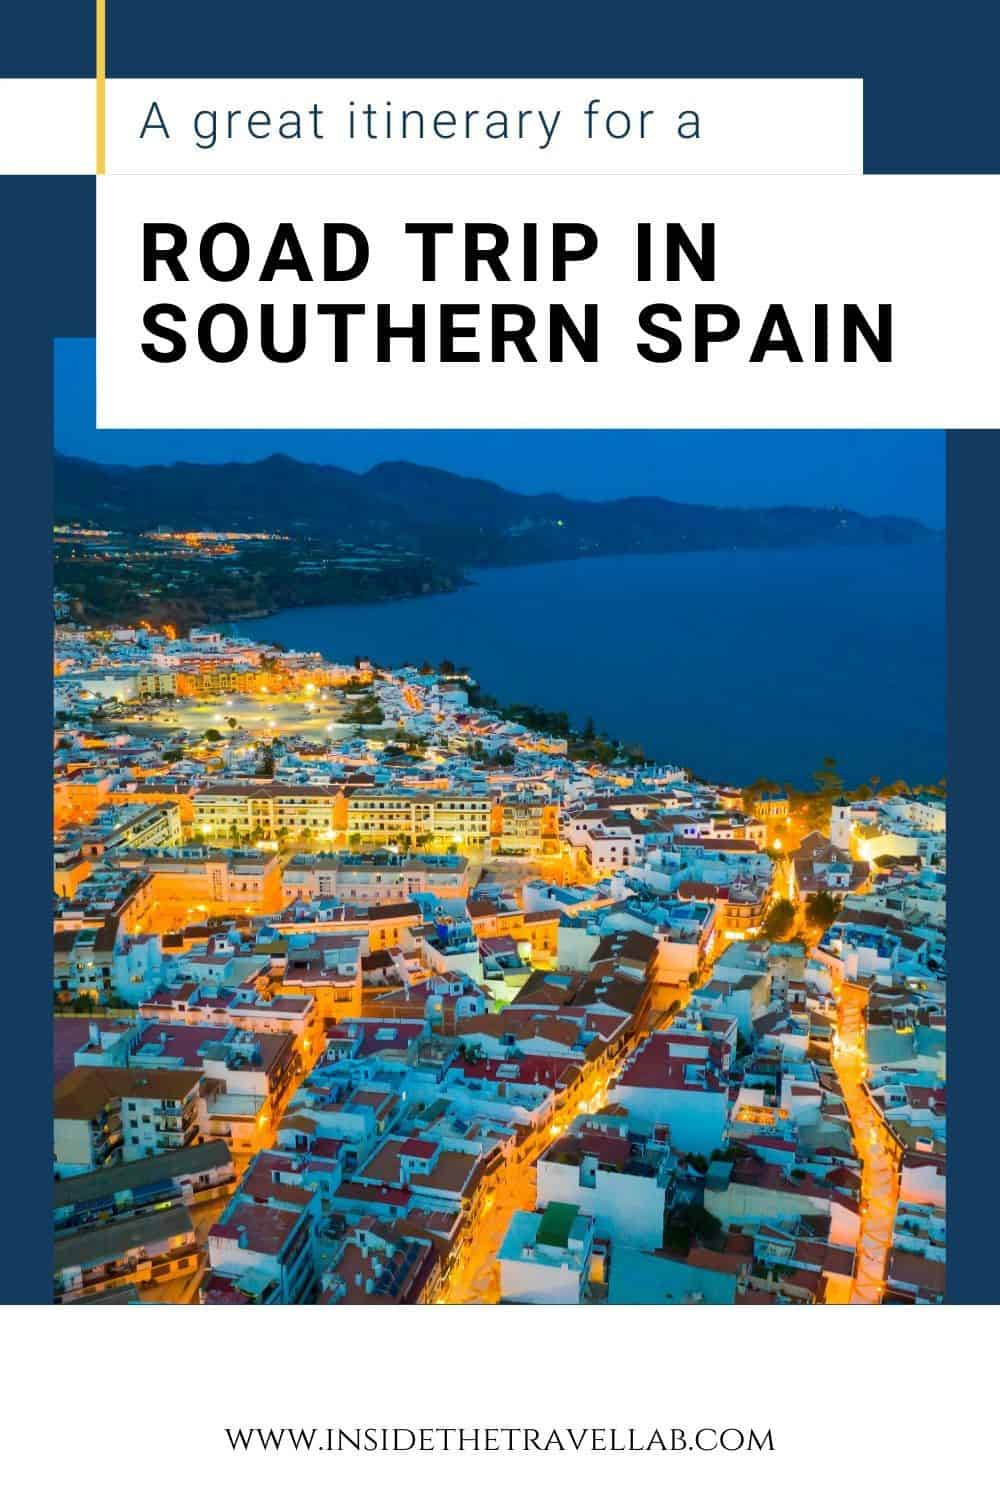 Southern Spain Travel Guide and Southern Spain Road Trip Itinerary with views of Spain at night